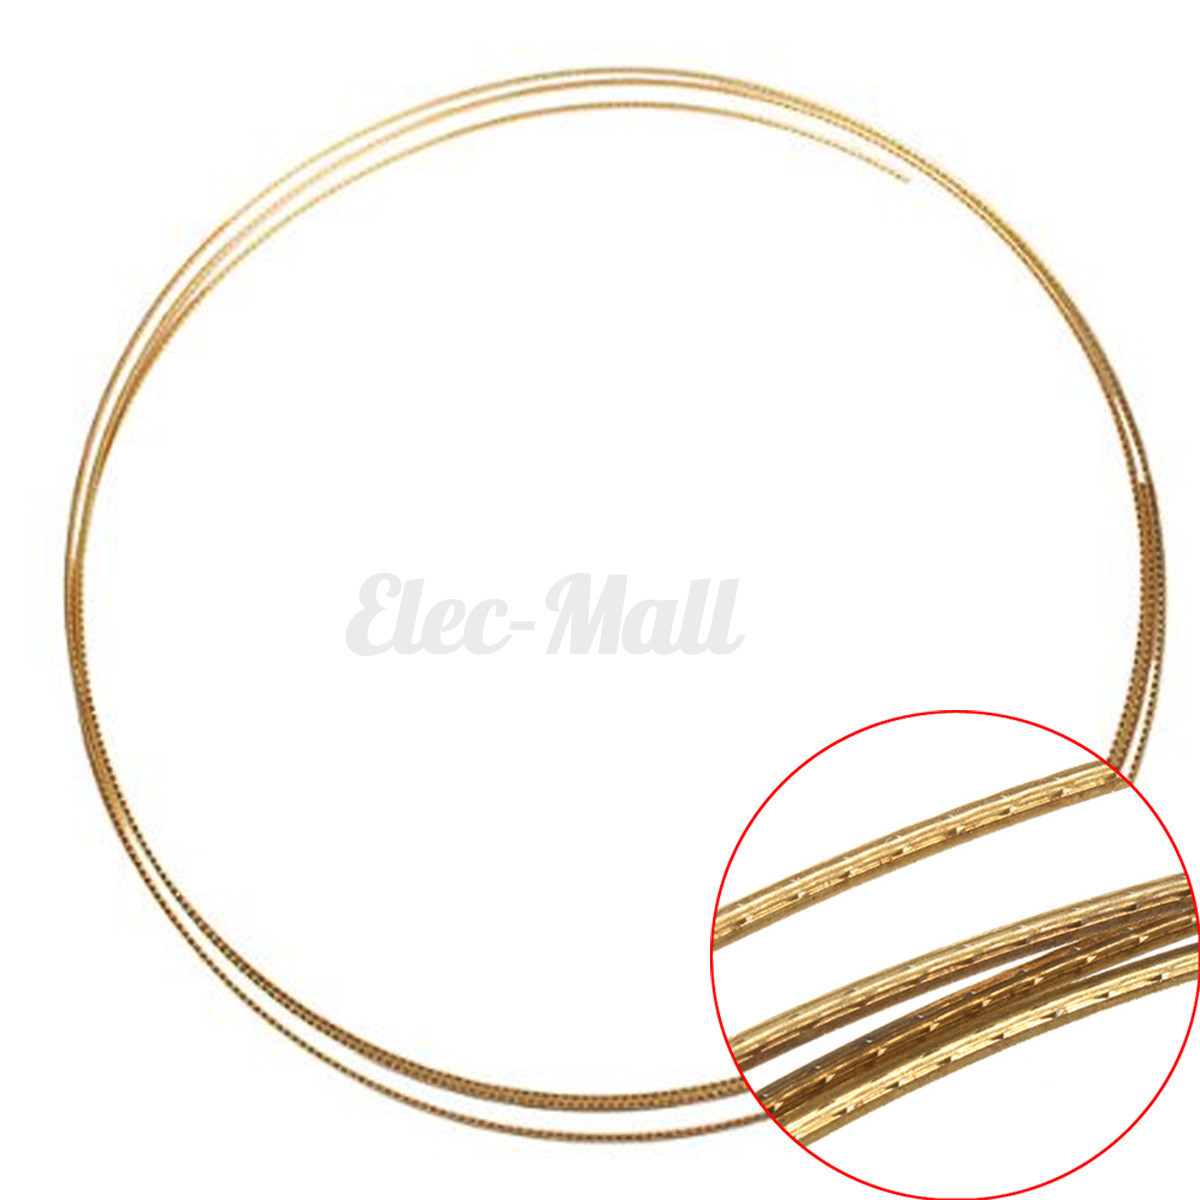 8ft acoustic guitar fret wire replacement guitar brass fret wire ebay. Black Bedroom Furniture Sets. Home Design Ideas